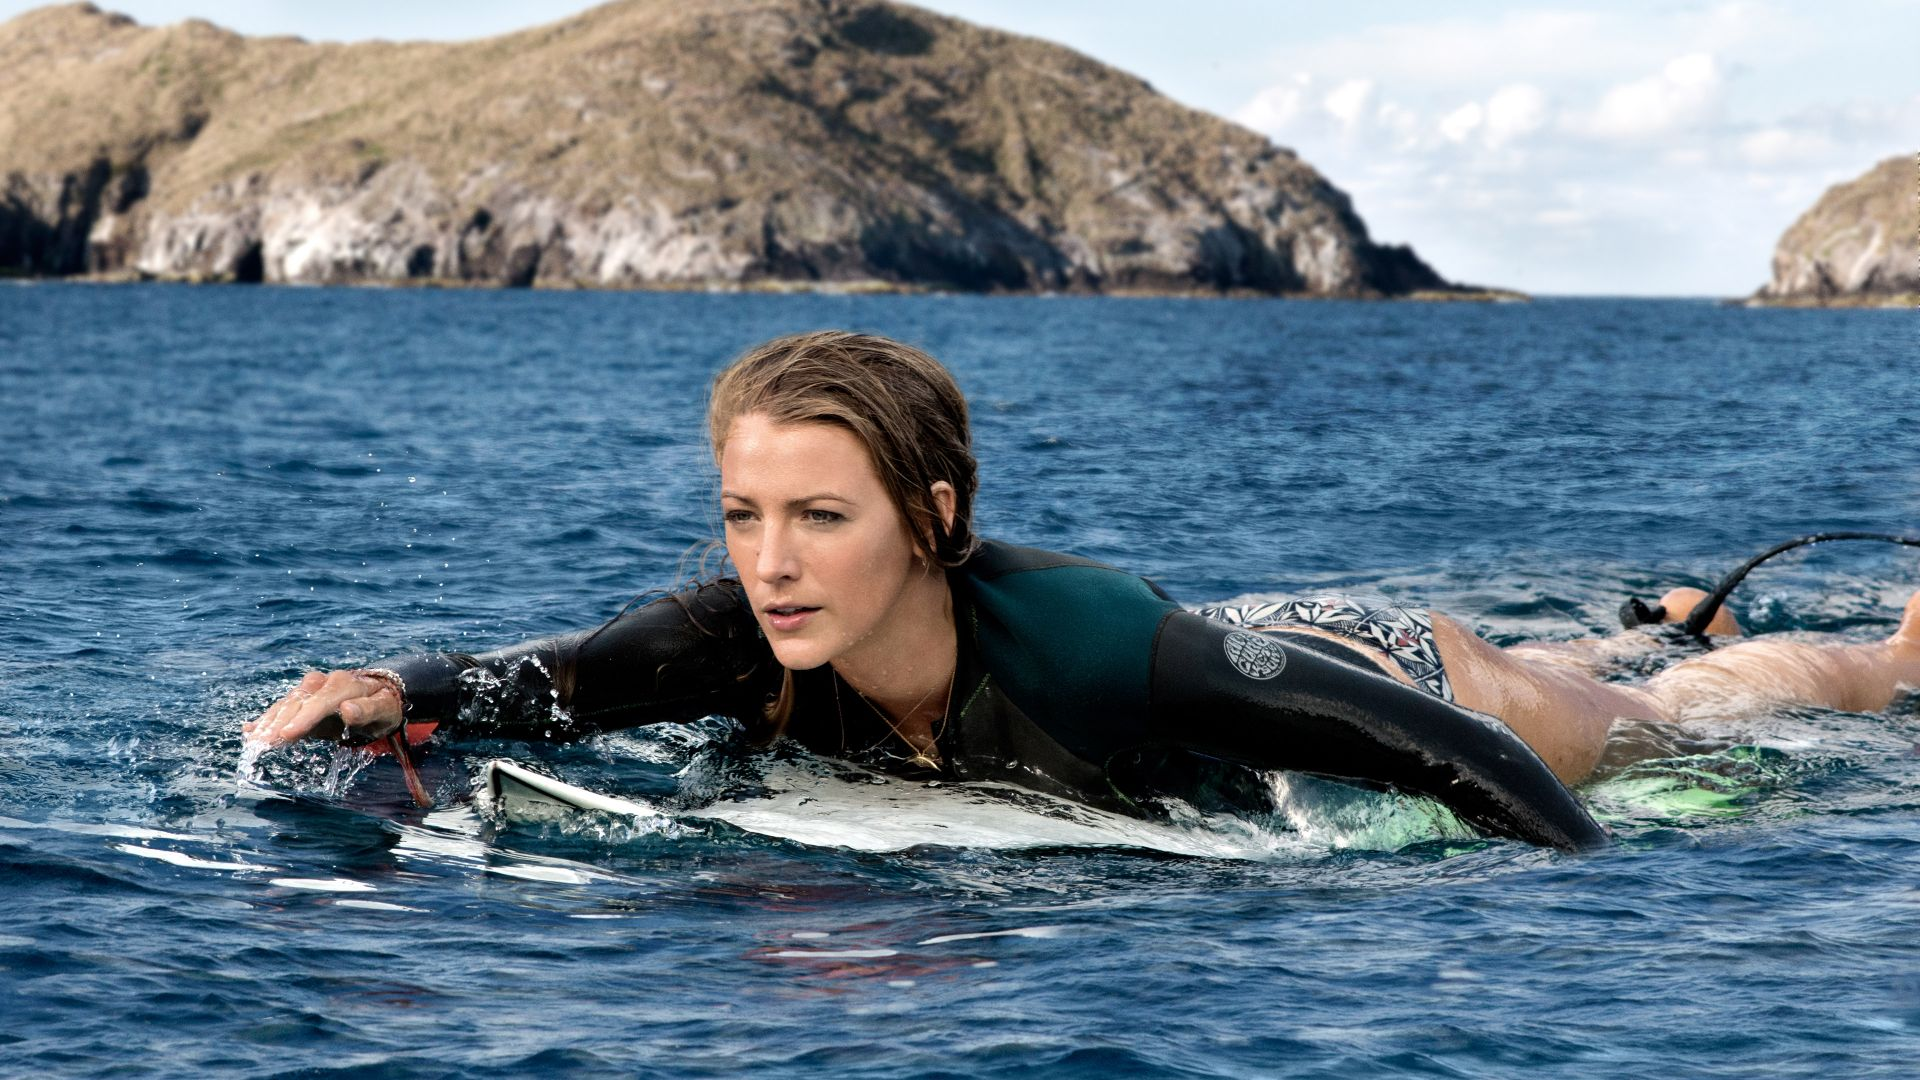 The Shallows, Blake Lively, sea, best movies (horizontal)